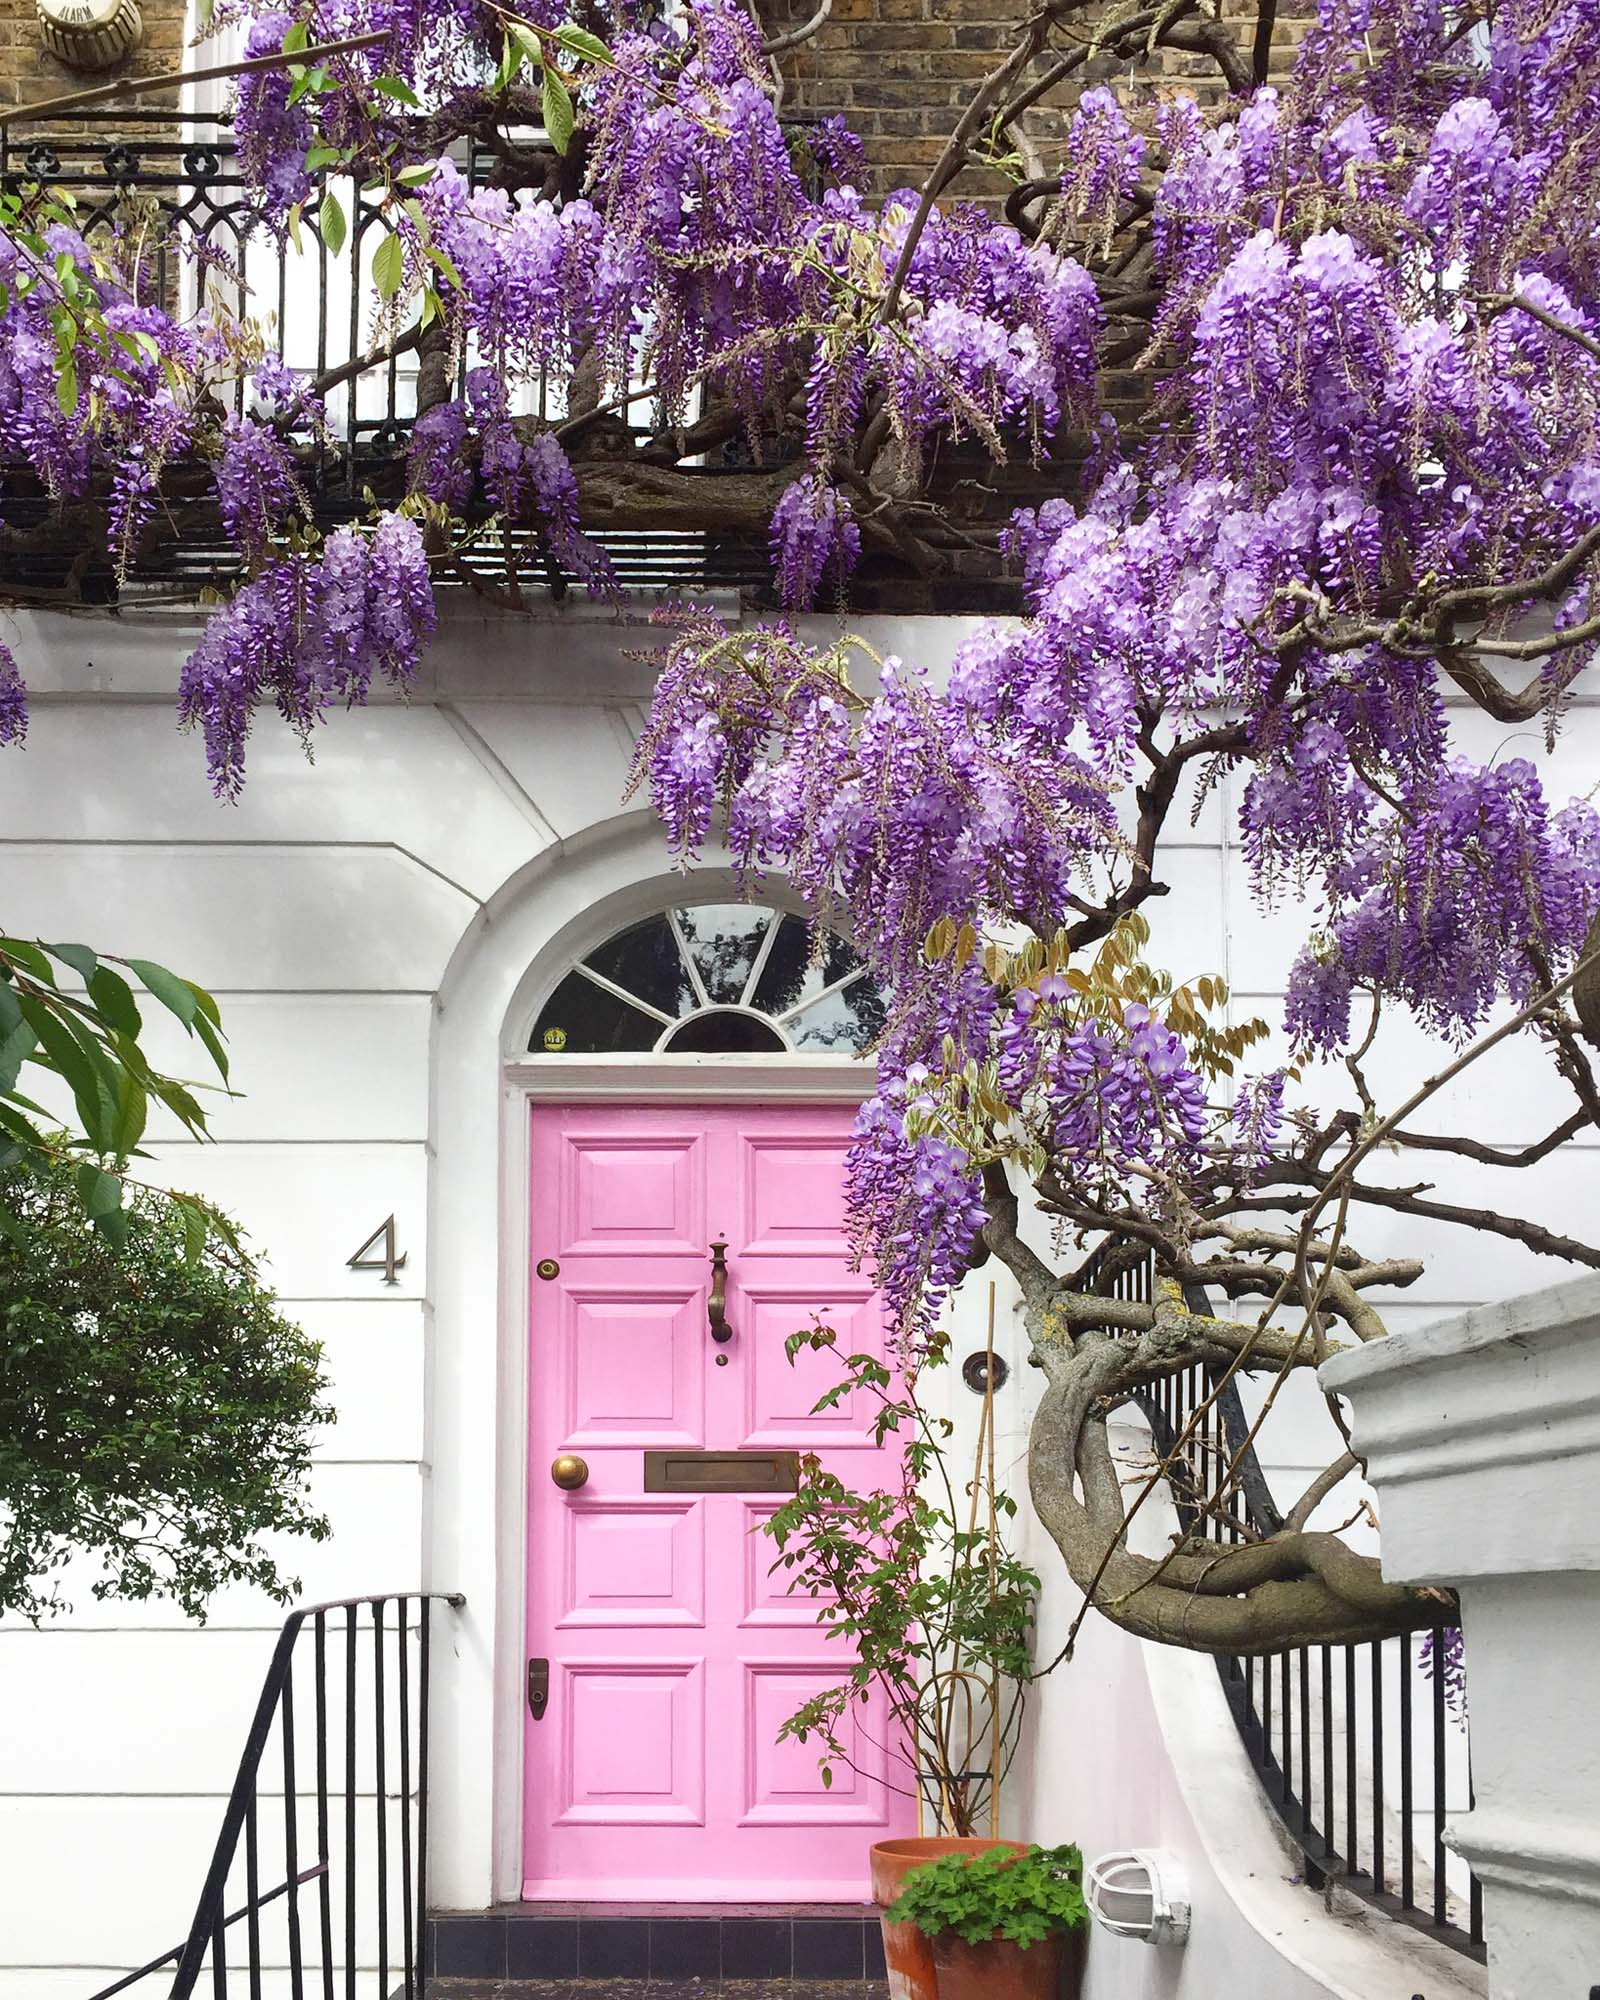 Julie's photo of a pink London front door and some #wisteriahysteria